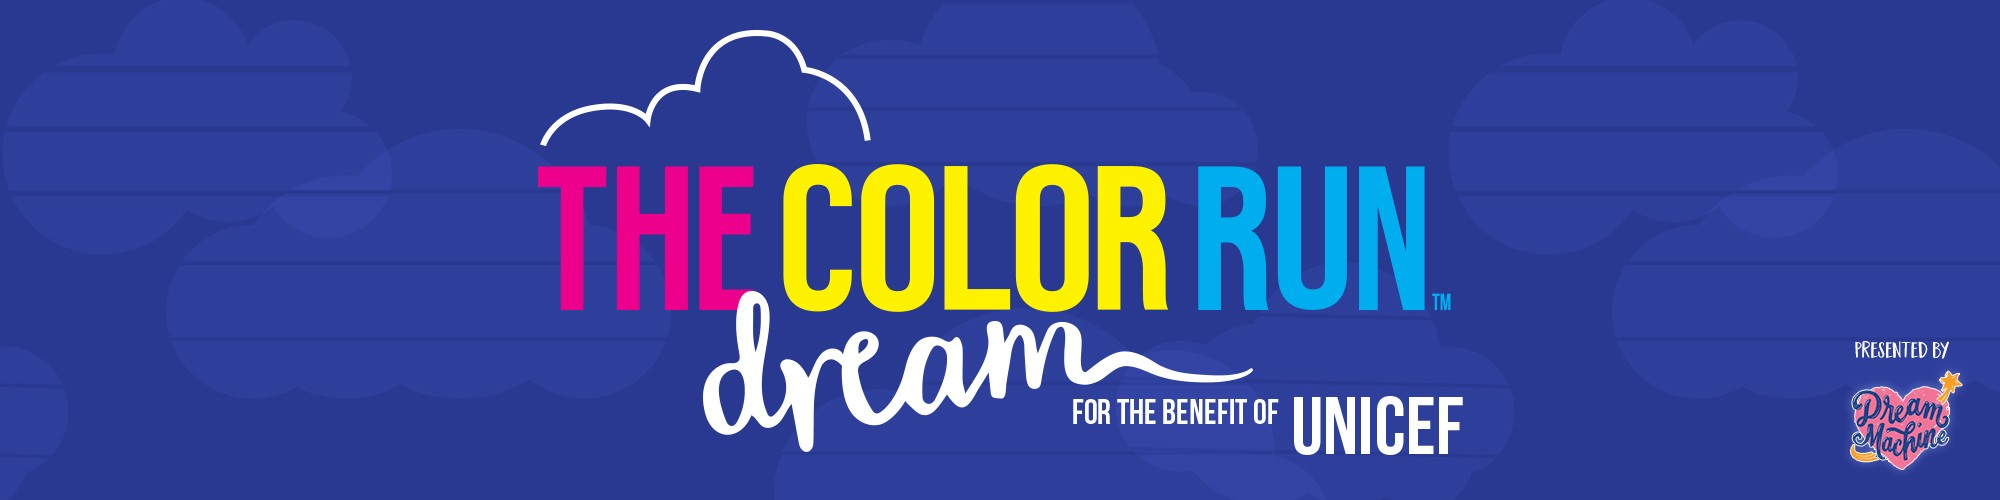 The Color Run Dream World Tour